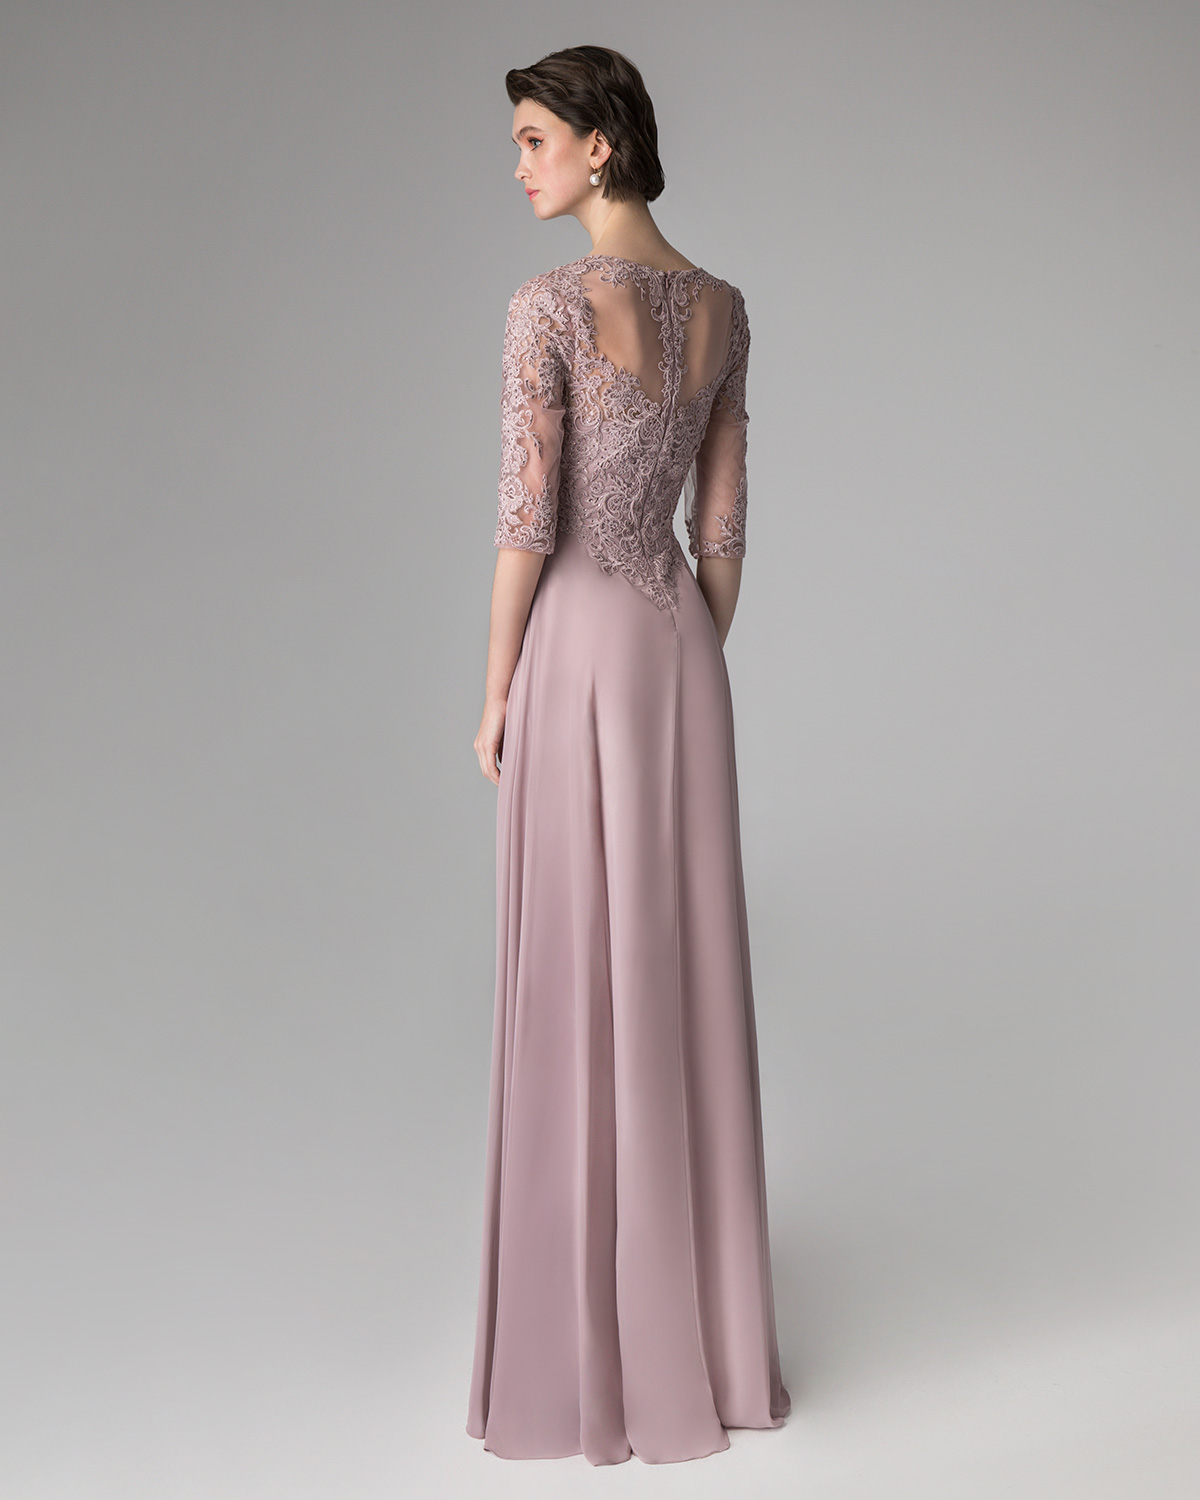 Classic Dresses / Long evening dress with applique lace on the top and long sleeves